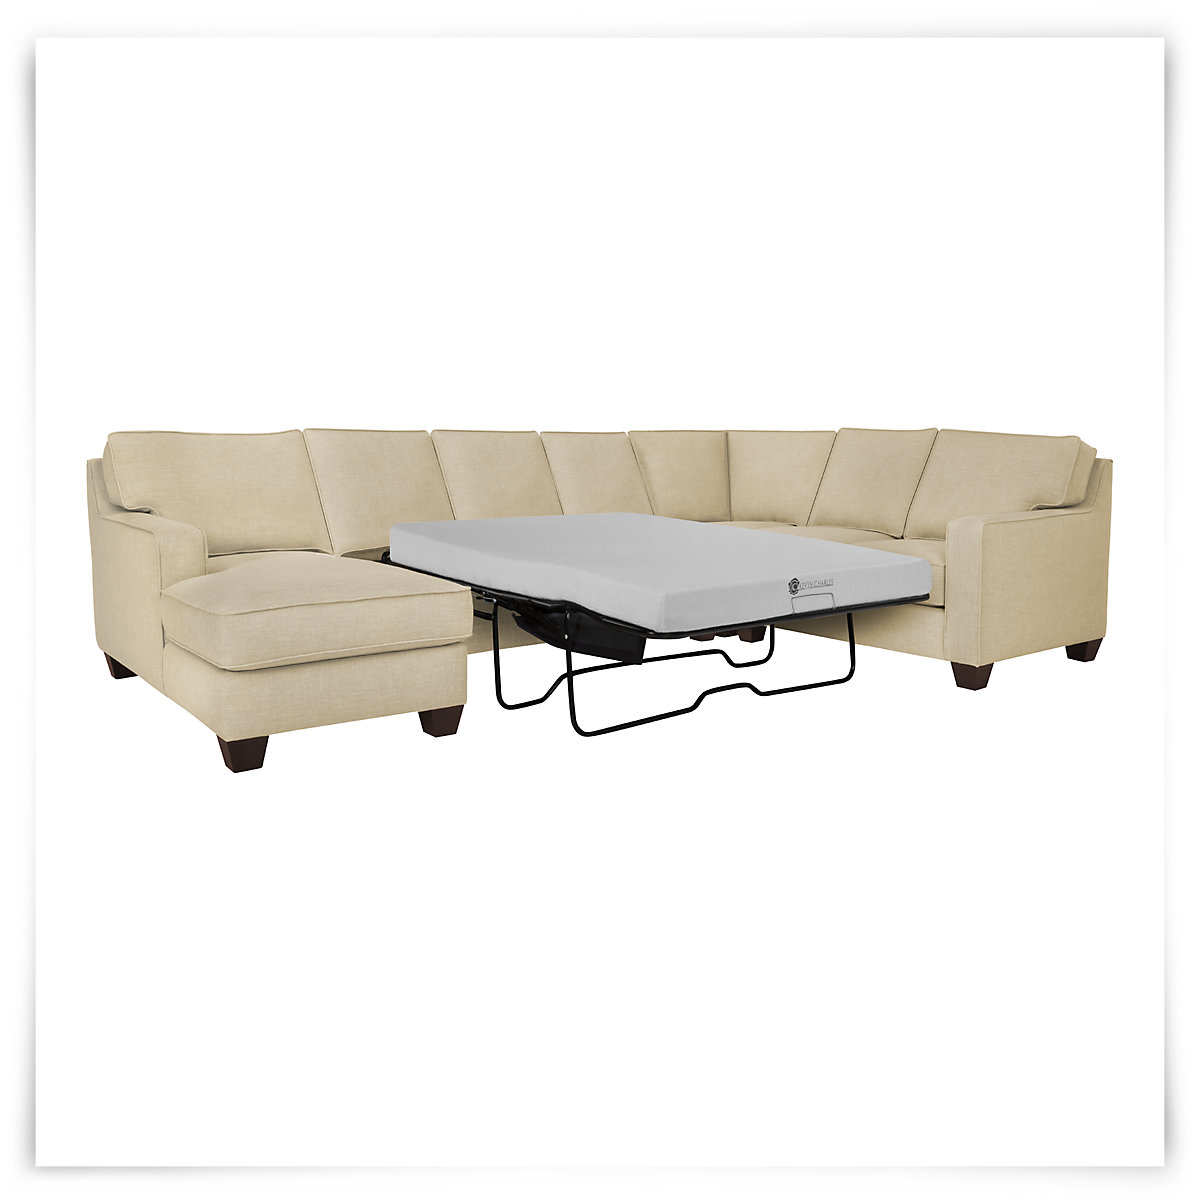 City furniture york beige fabric left chaise memory foam for Beige sectional with chaise